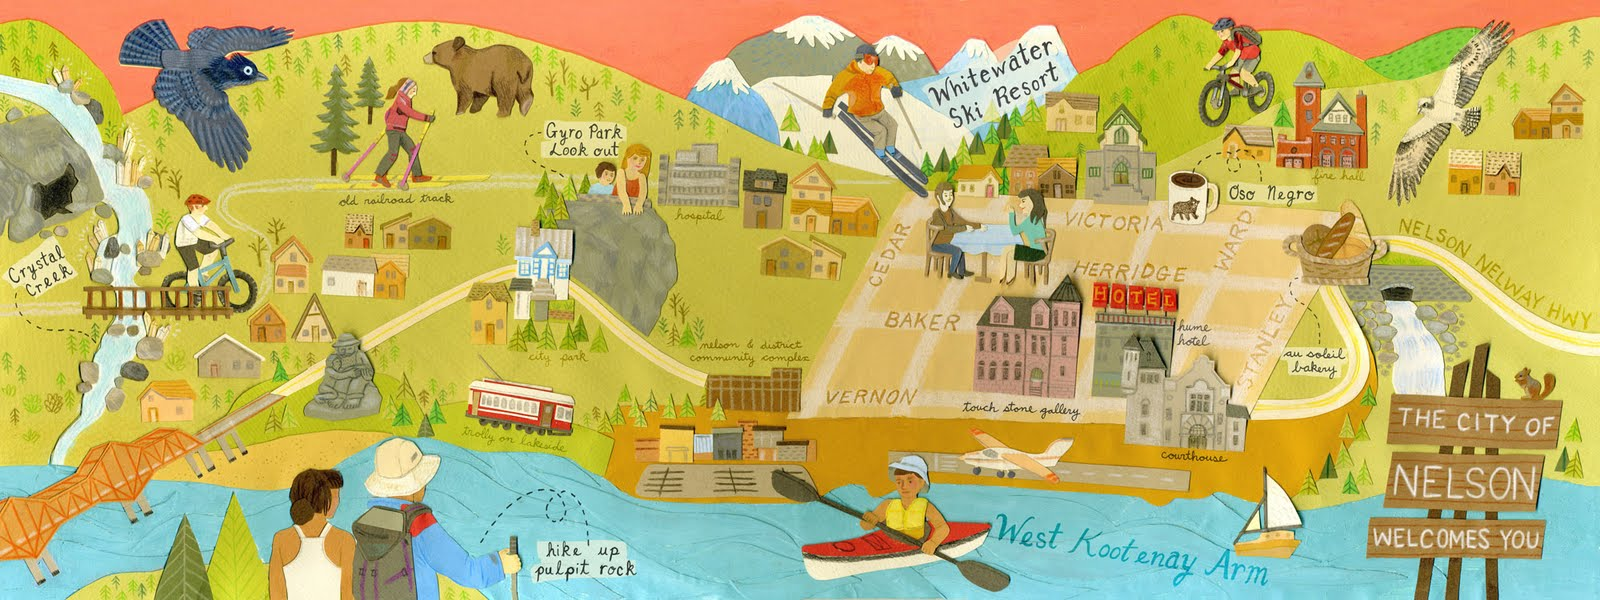 Map Of Nelson Bc Jessica Rae Gordon: Illustrated Map of Nelson, BC